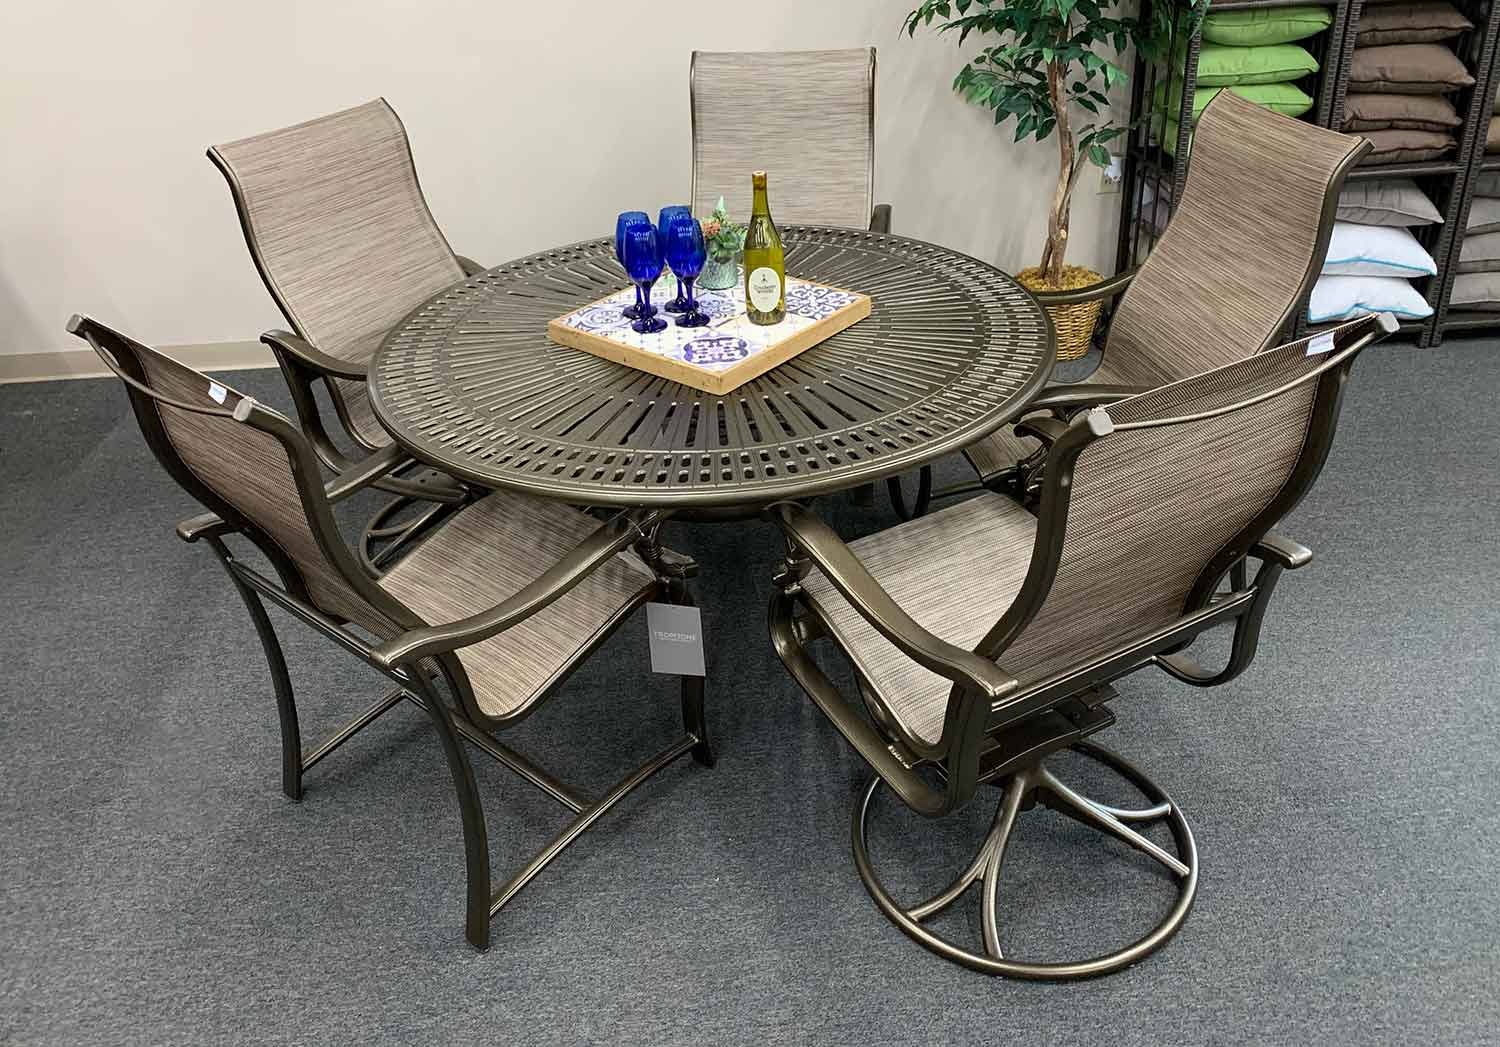 Ravello Sling Patio Dining Set in Knoxville TN